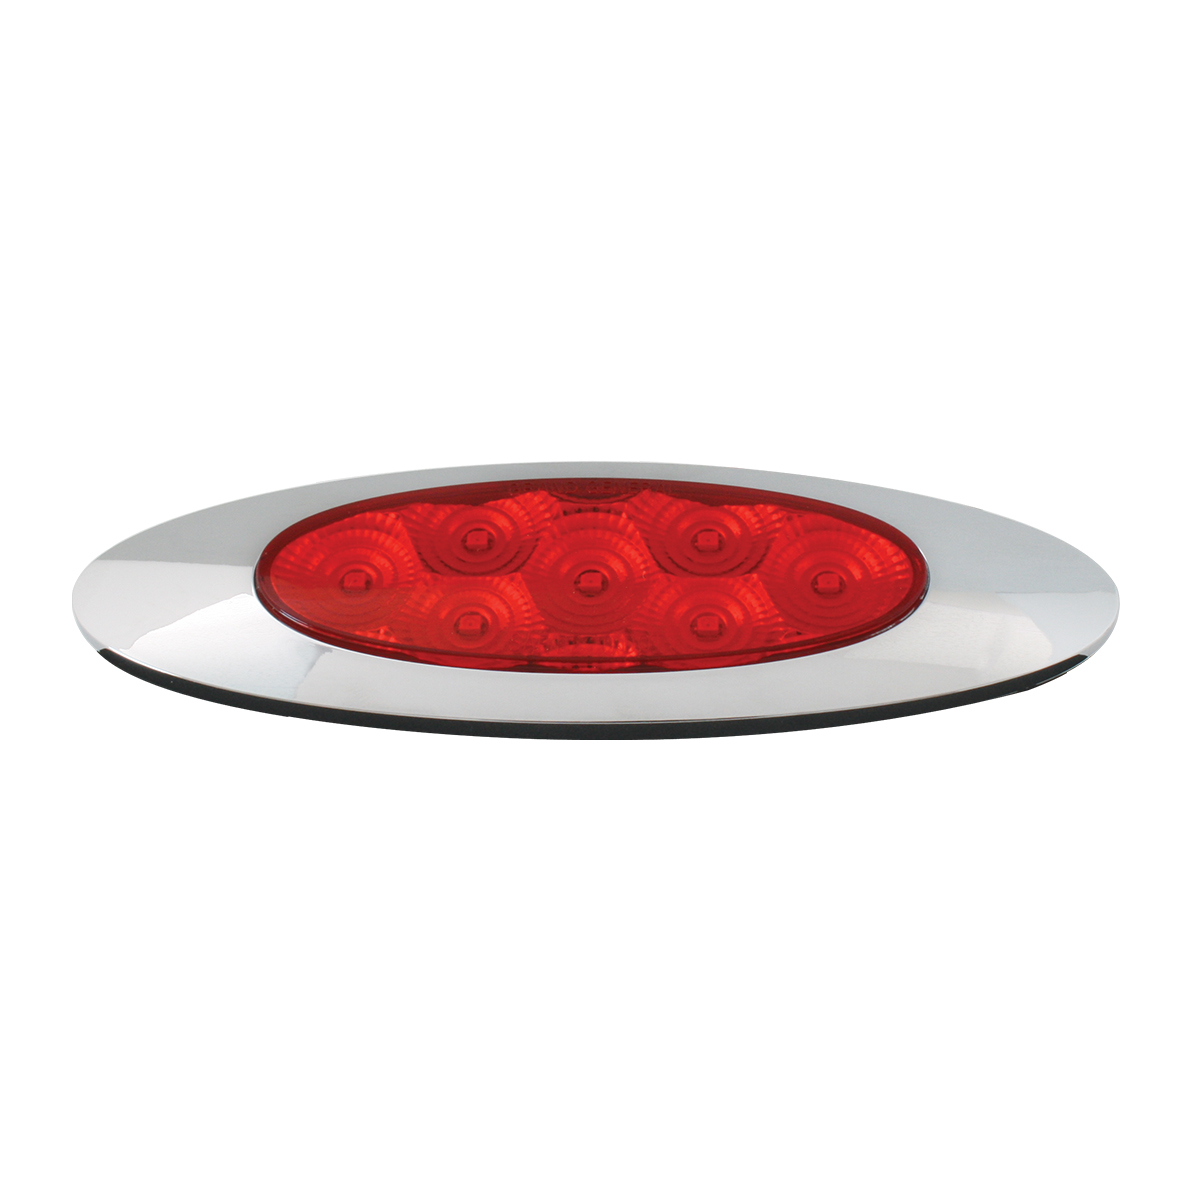 Ultra Thin Y2K Spyder LED Light in Red/Red